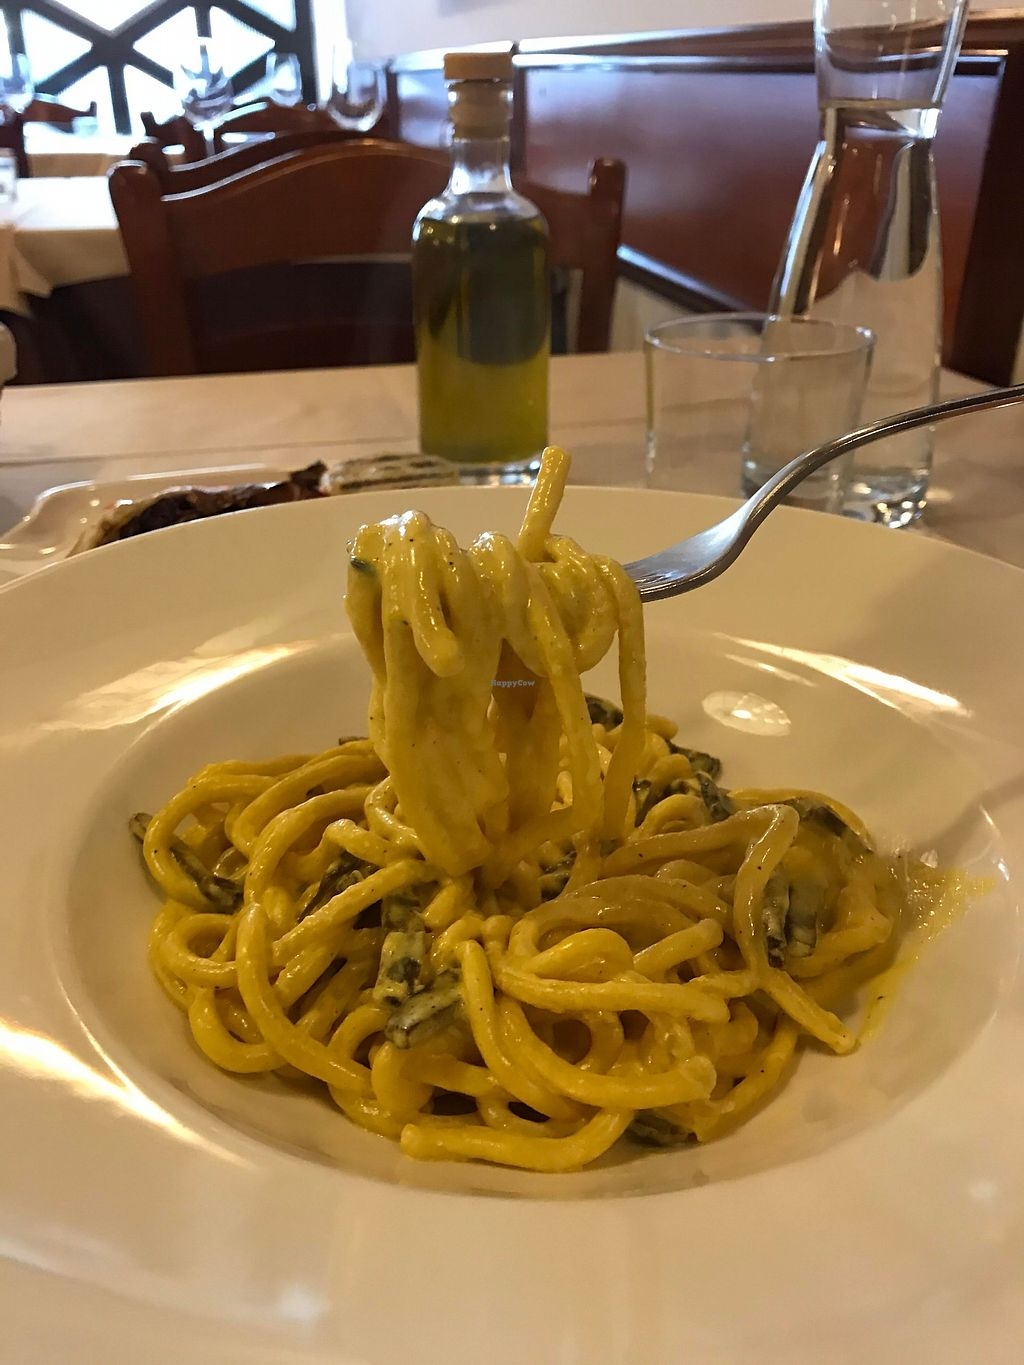 "Photo of La Lanterna  by <a href=""/members/profile/KorneliaSochanova"">KorneliaSochanova</a> <br/>spaghetti carbonara <br/> February 11, 2018  - <a href='/contact/abuse/image/43047/357797'>Report</a>"